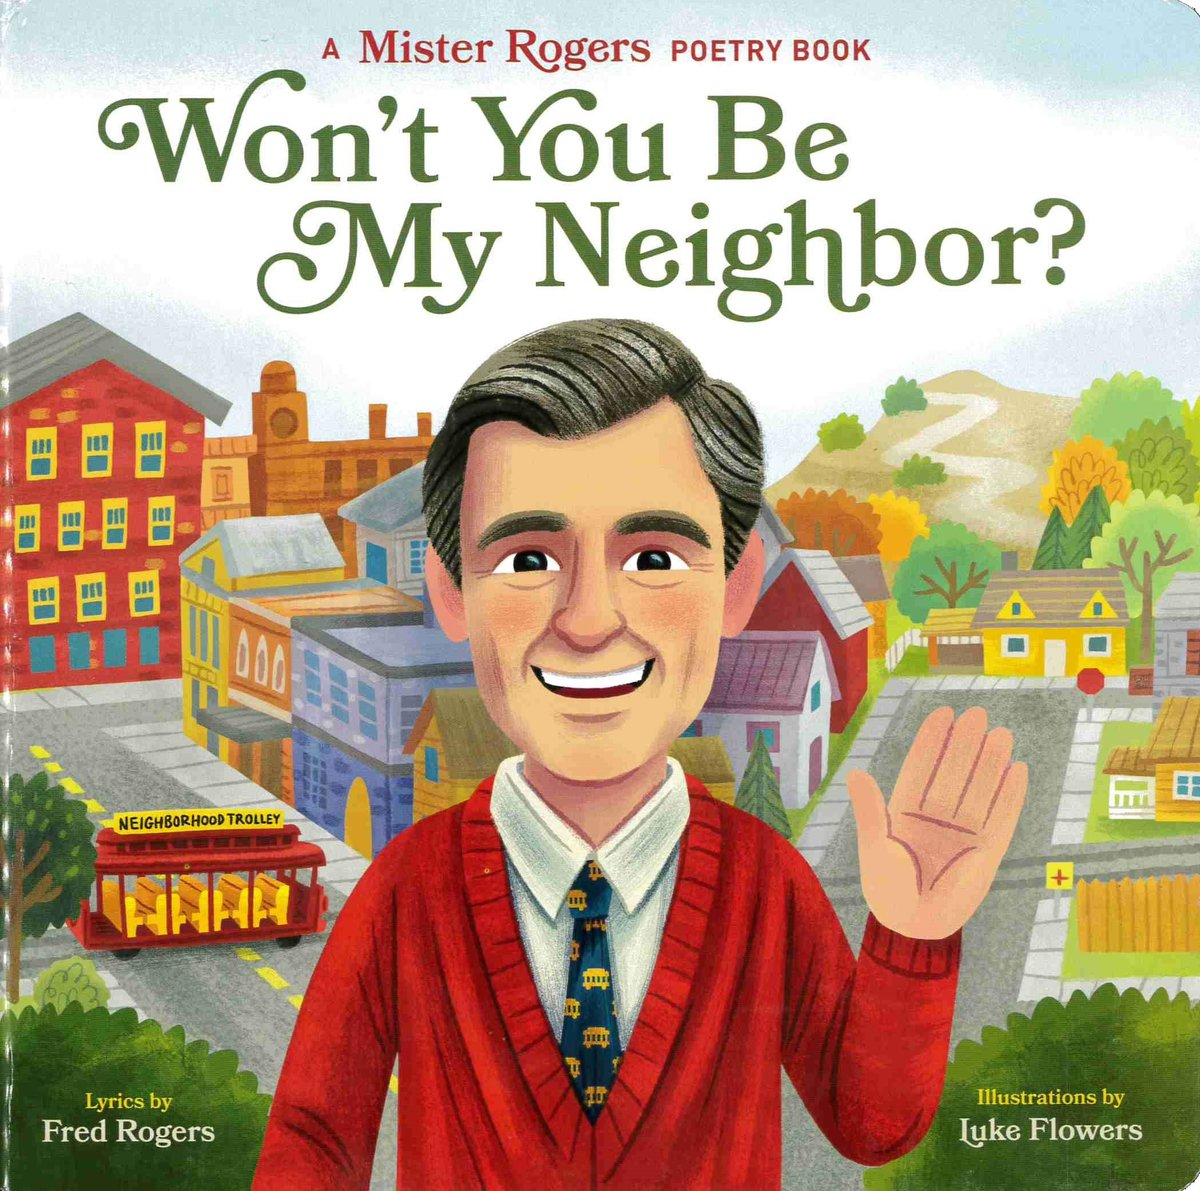 The Mister Rogers Neighborhood Archive Mrnarchive Twitter